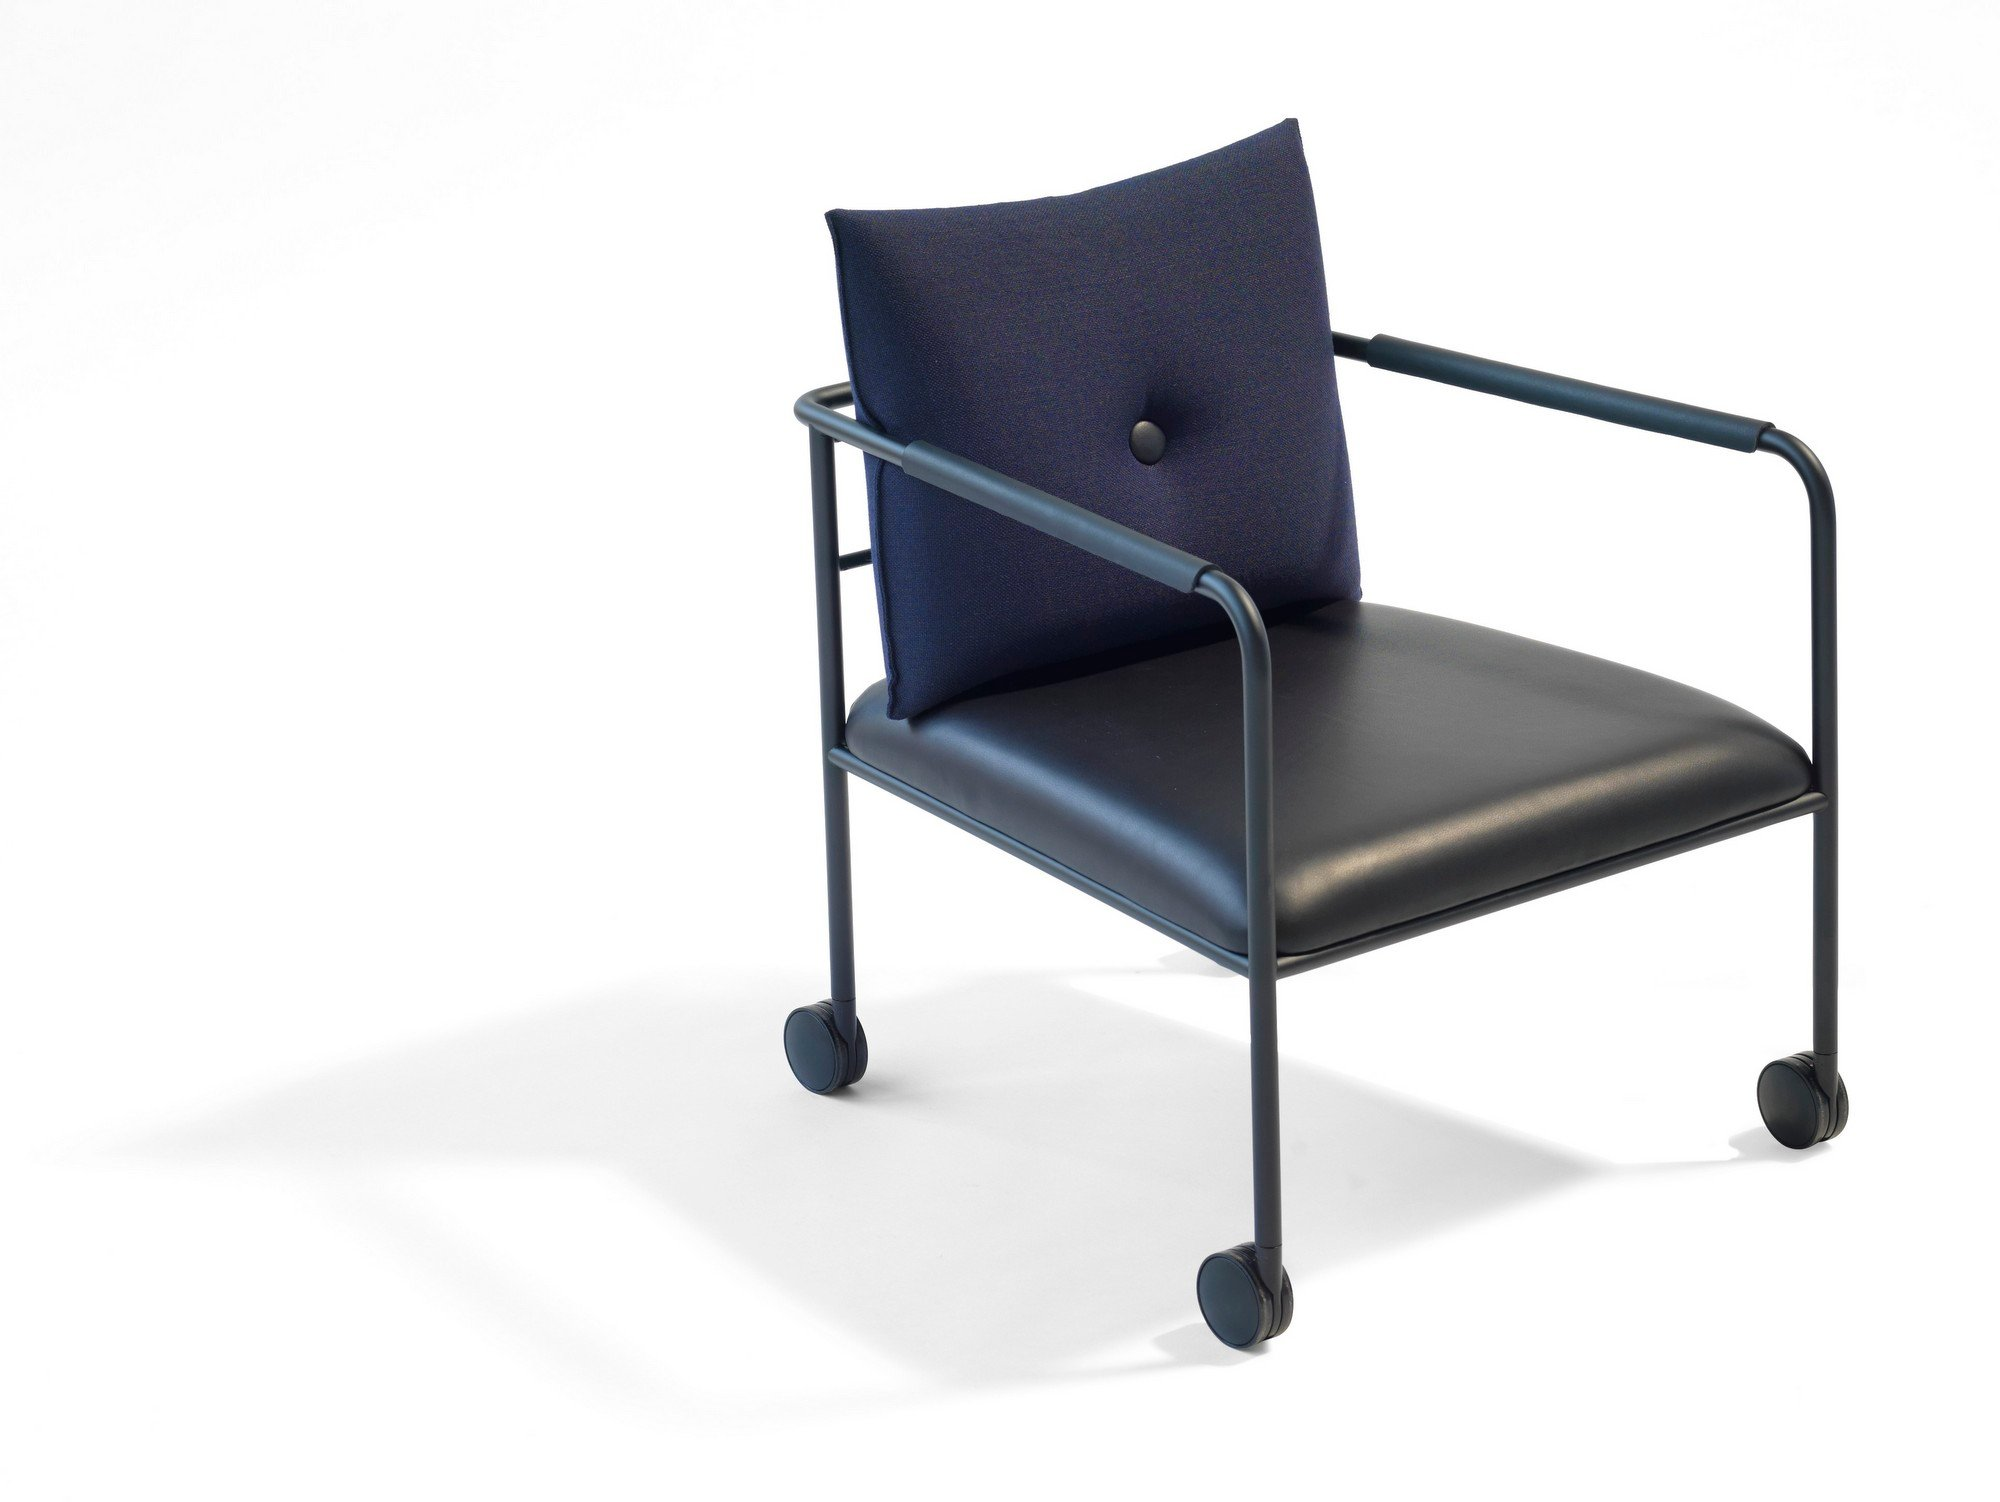 Armchair With Casters: MORRIS JR Armchair With Casters By Blå Station Design